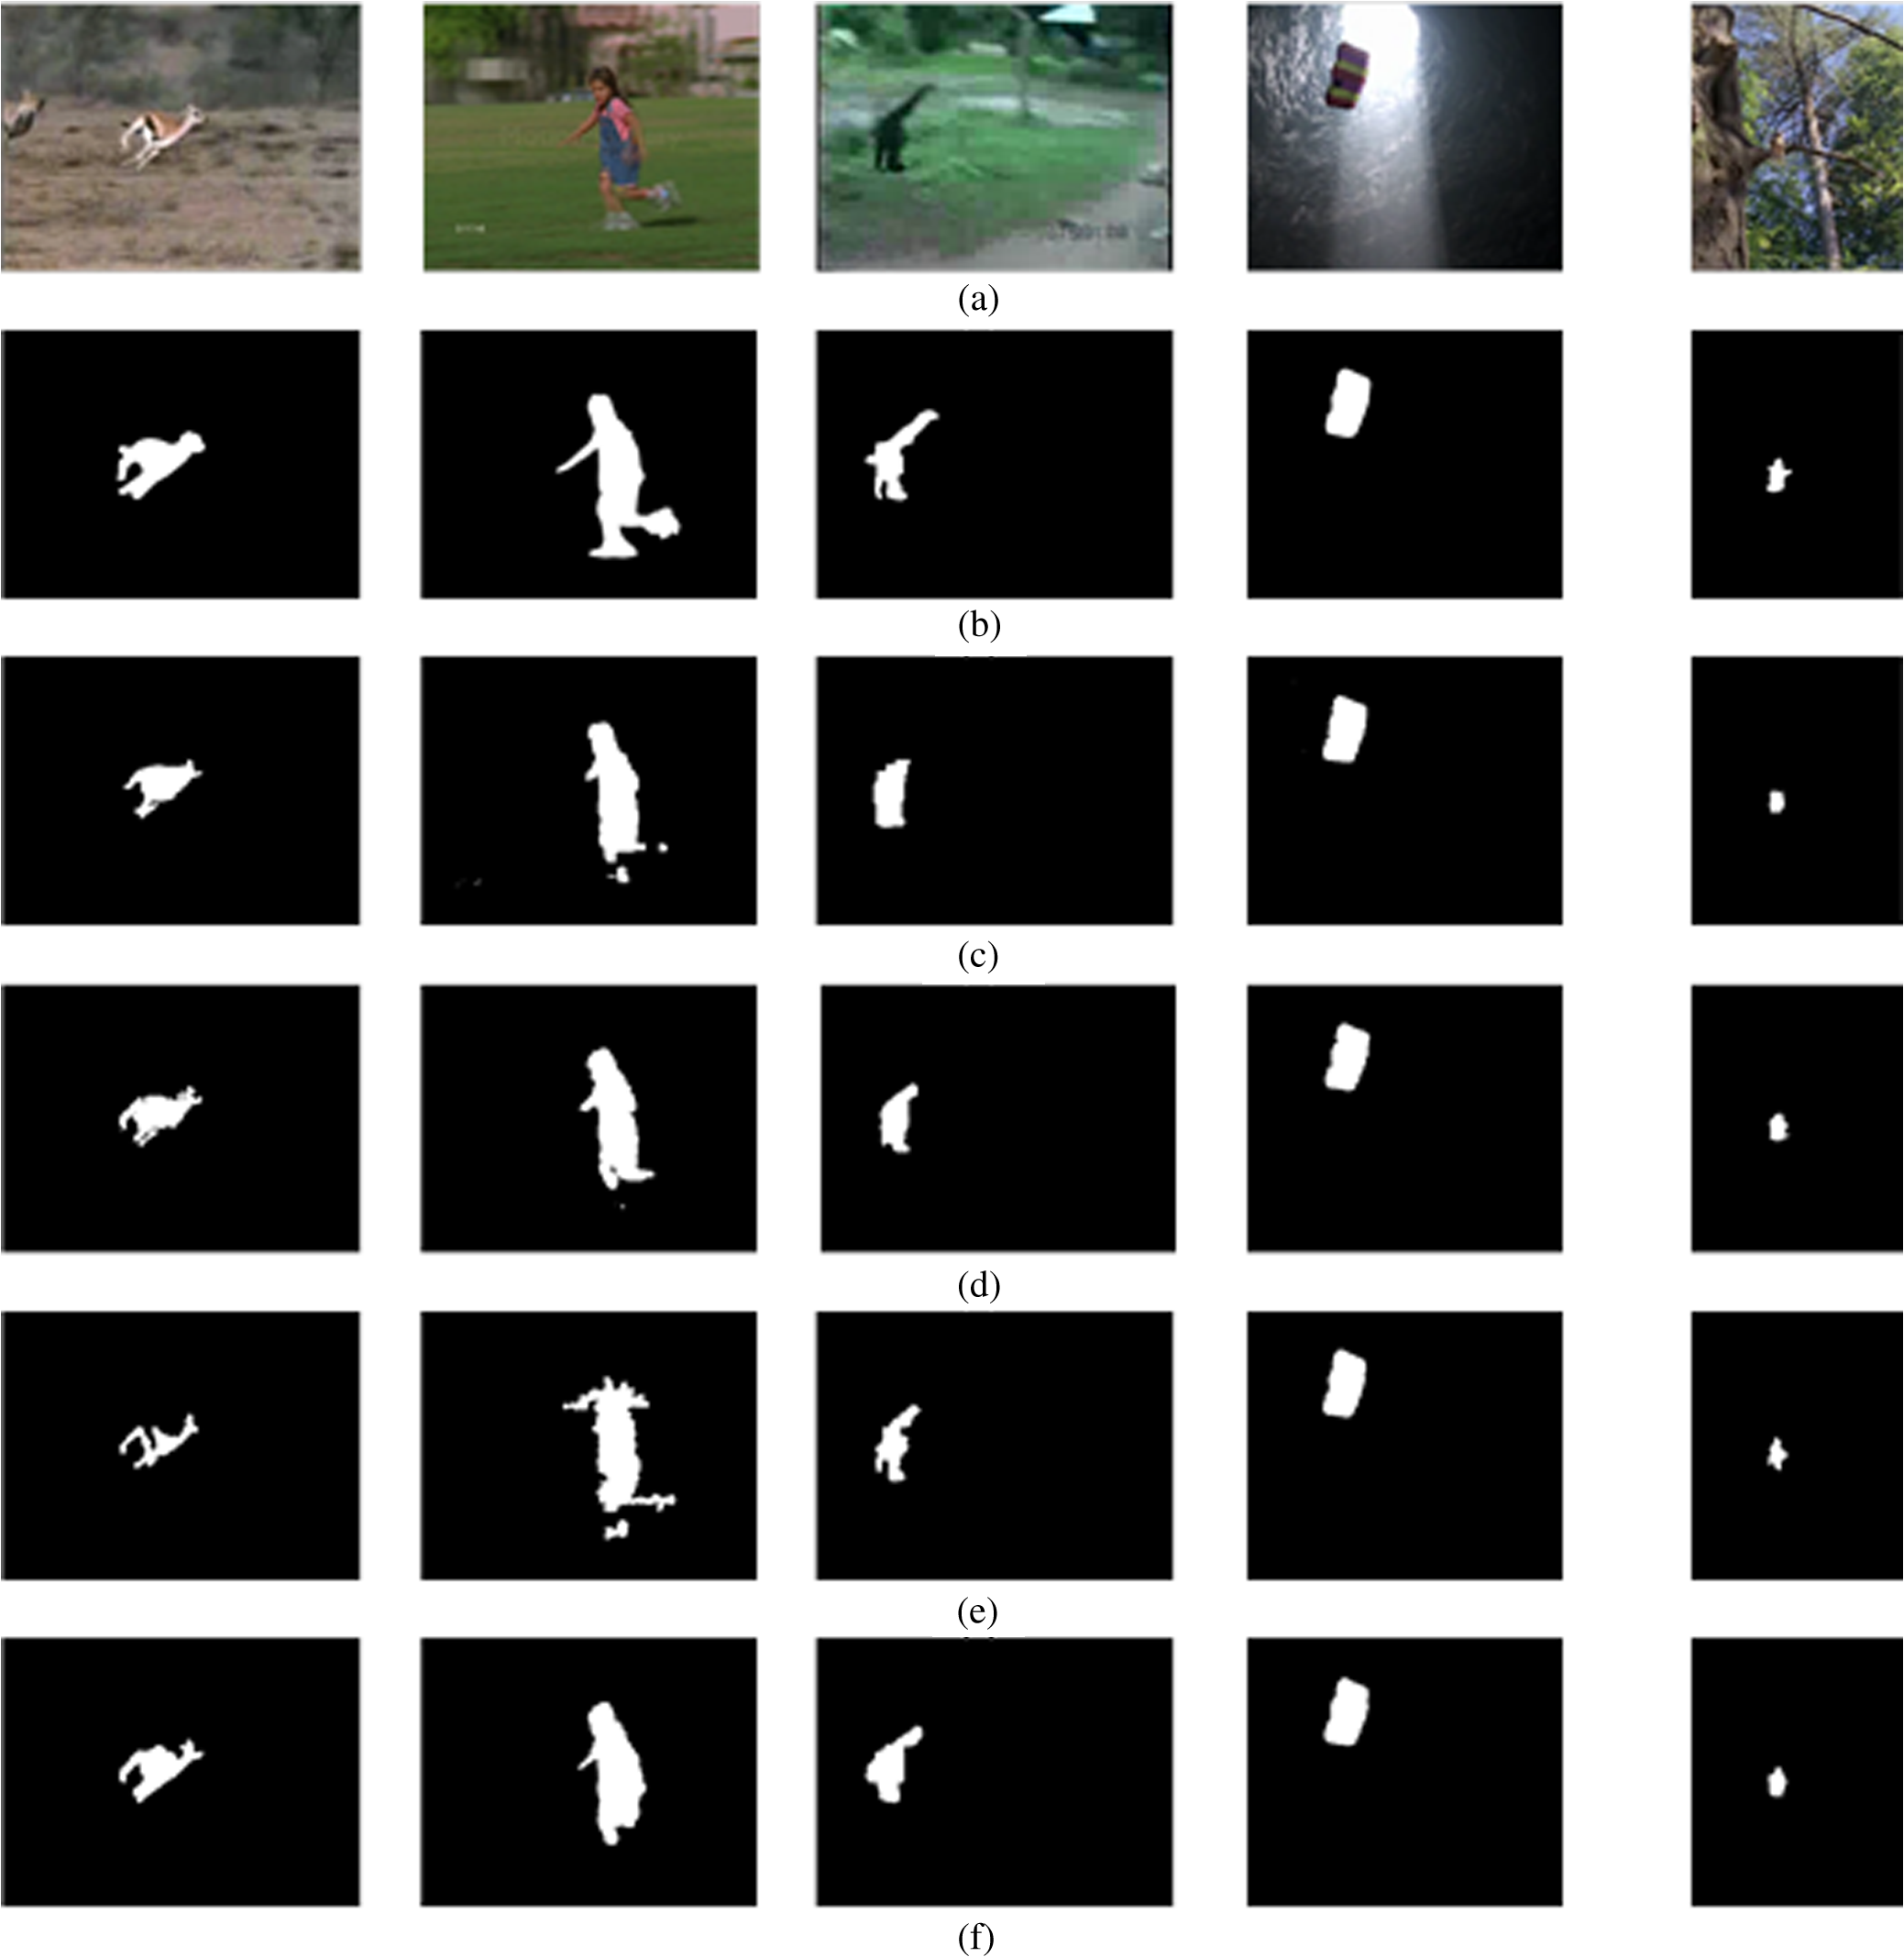 Robust segmentation of moving objects in video based on